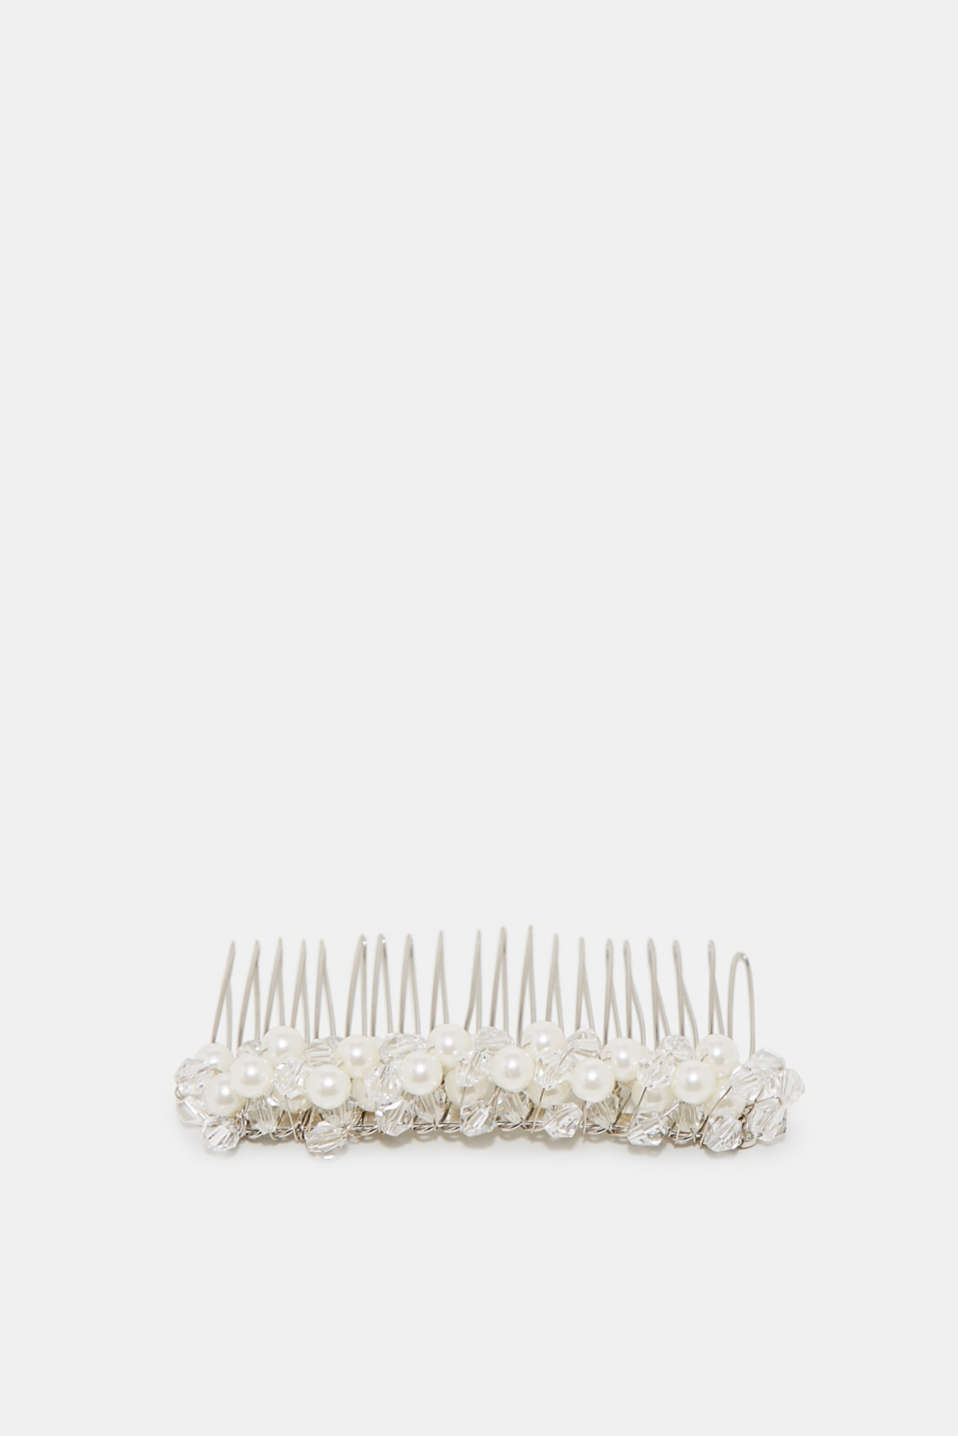 Esprit - Hair comb with beads + facet-cut stones